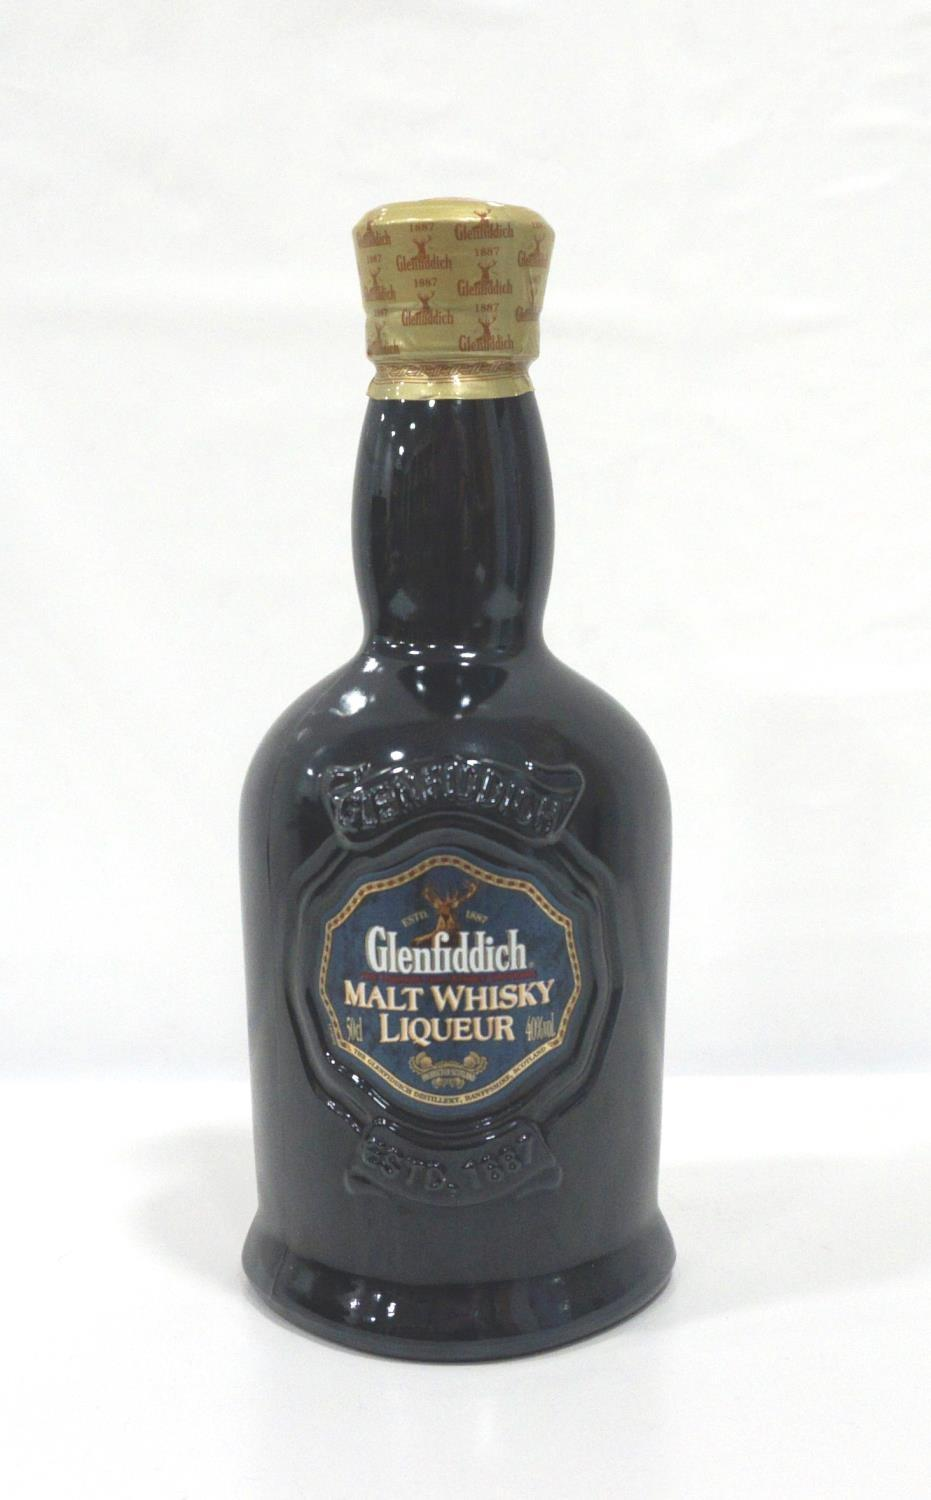 GLENFIDDICH MALT WHISKY LIQUEUR A highly sought after and long discontinued bottle of the